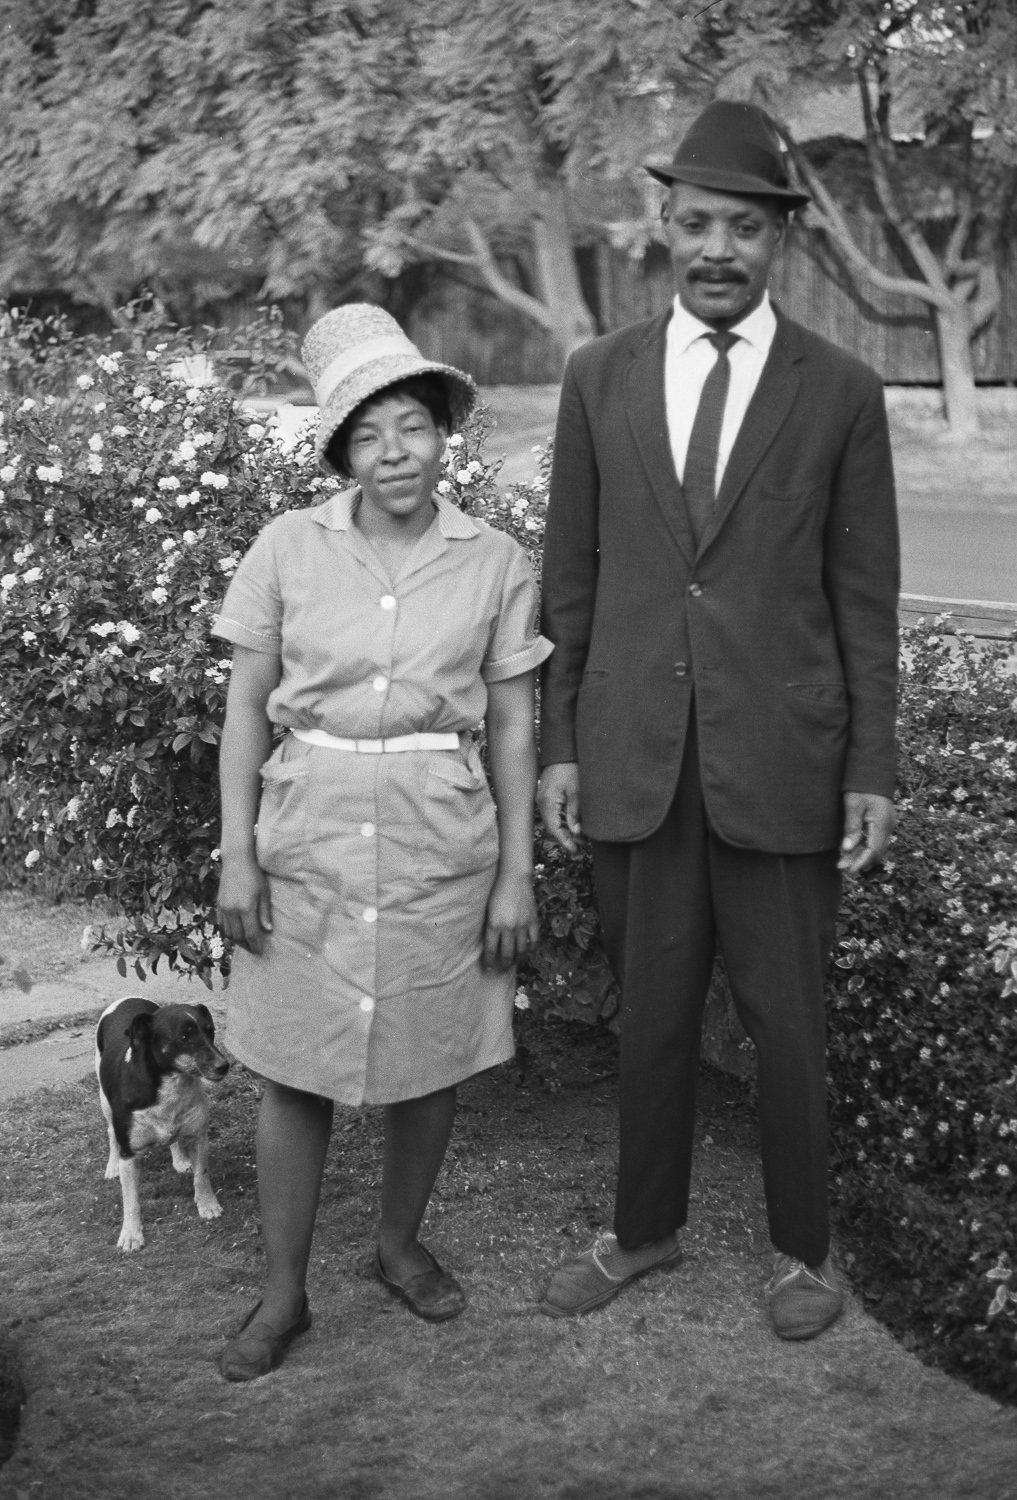 Dorcas and Sixy, Linksfield - 1970